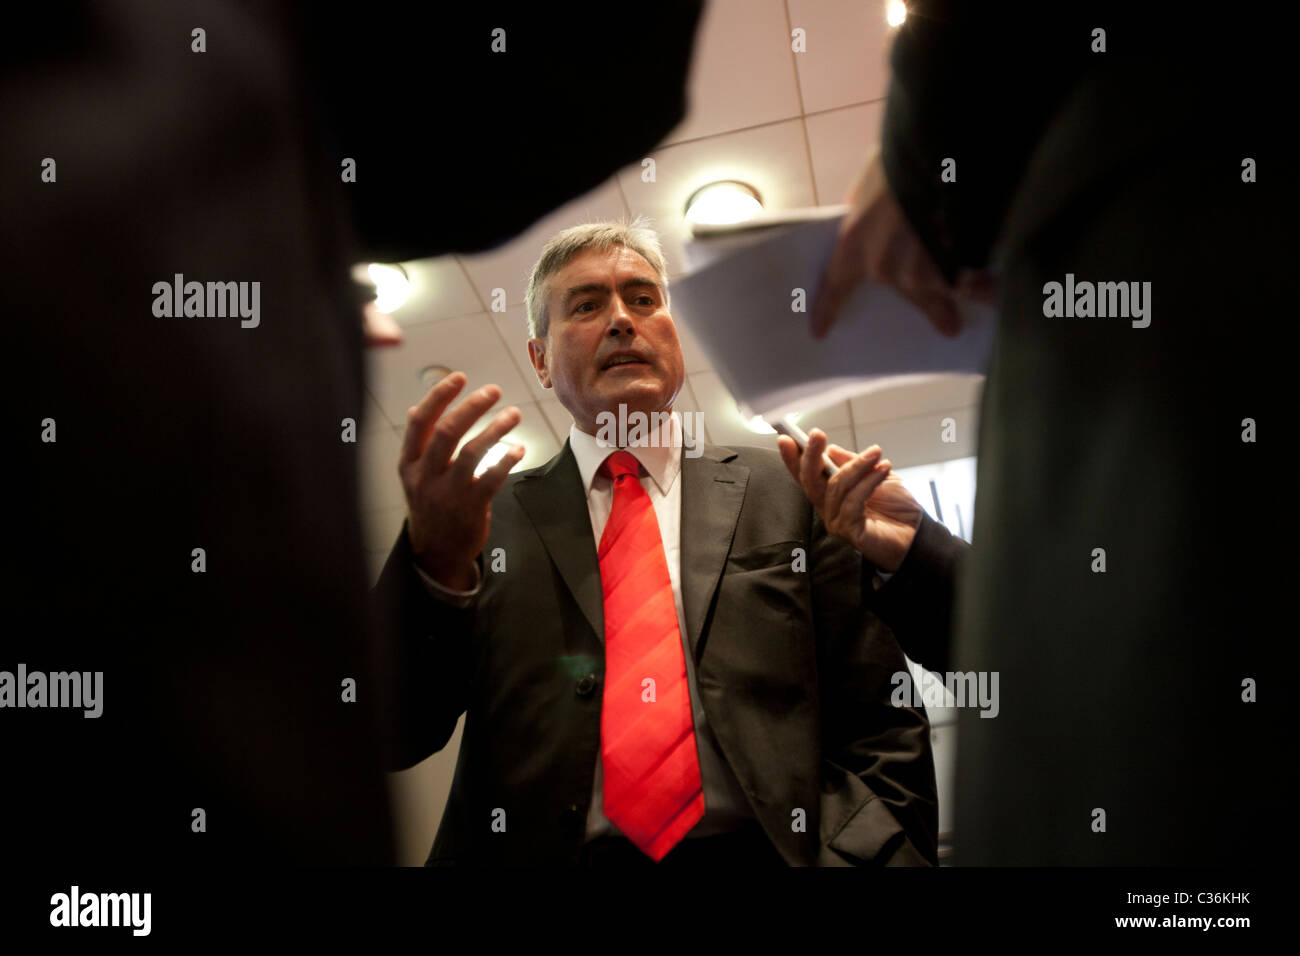 Iain Gray MSP, Scottish Labour leader talks to journalists in Glasgow - Stock Image